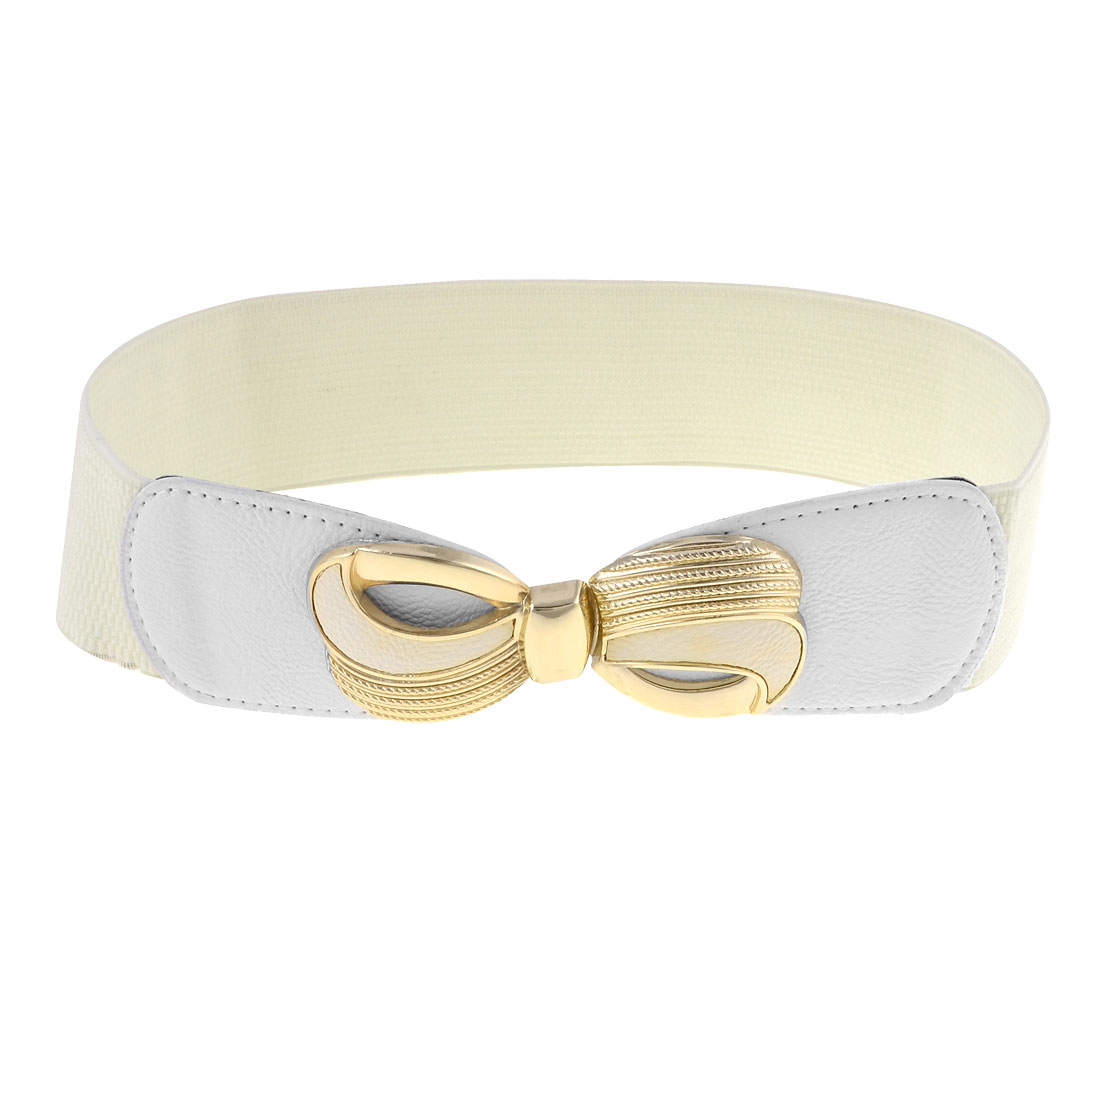 Off White Double Bowknots Detail Stretchy Waistband Waist Belt for Lady